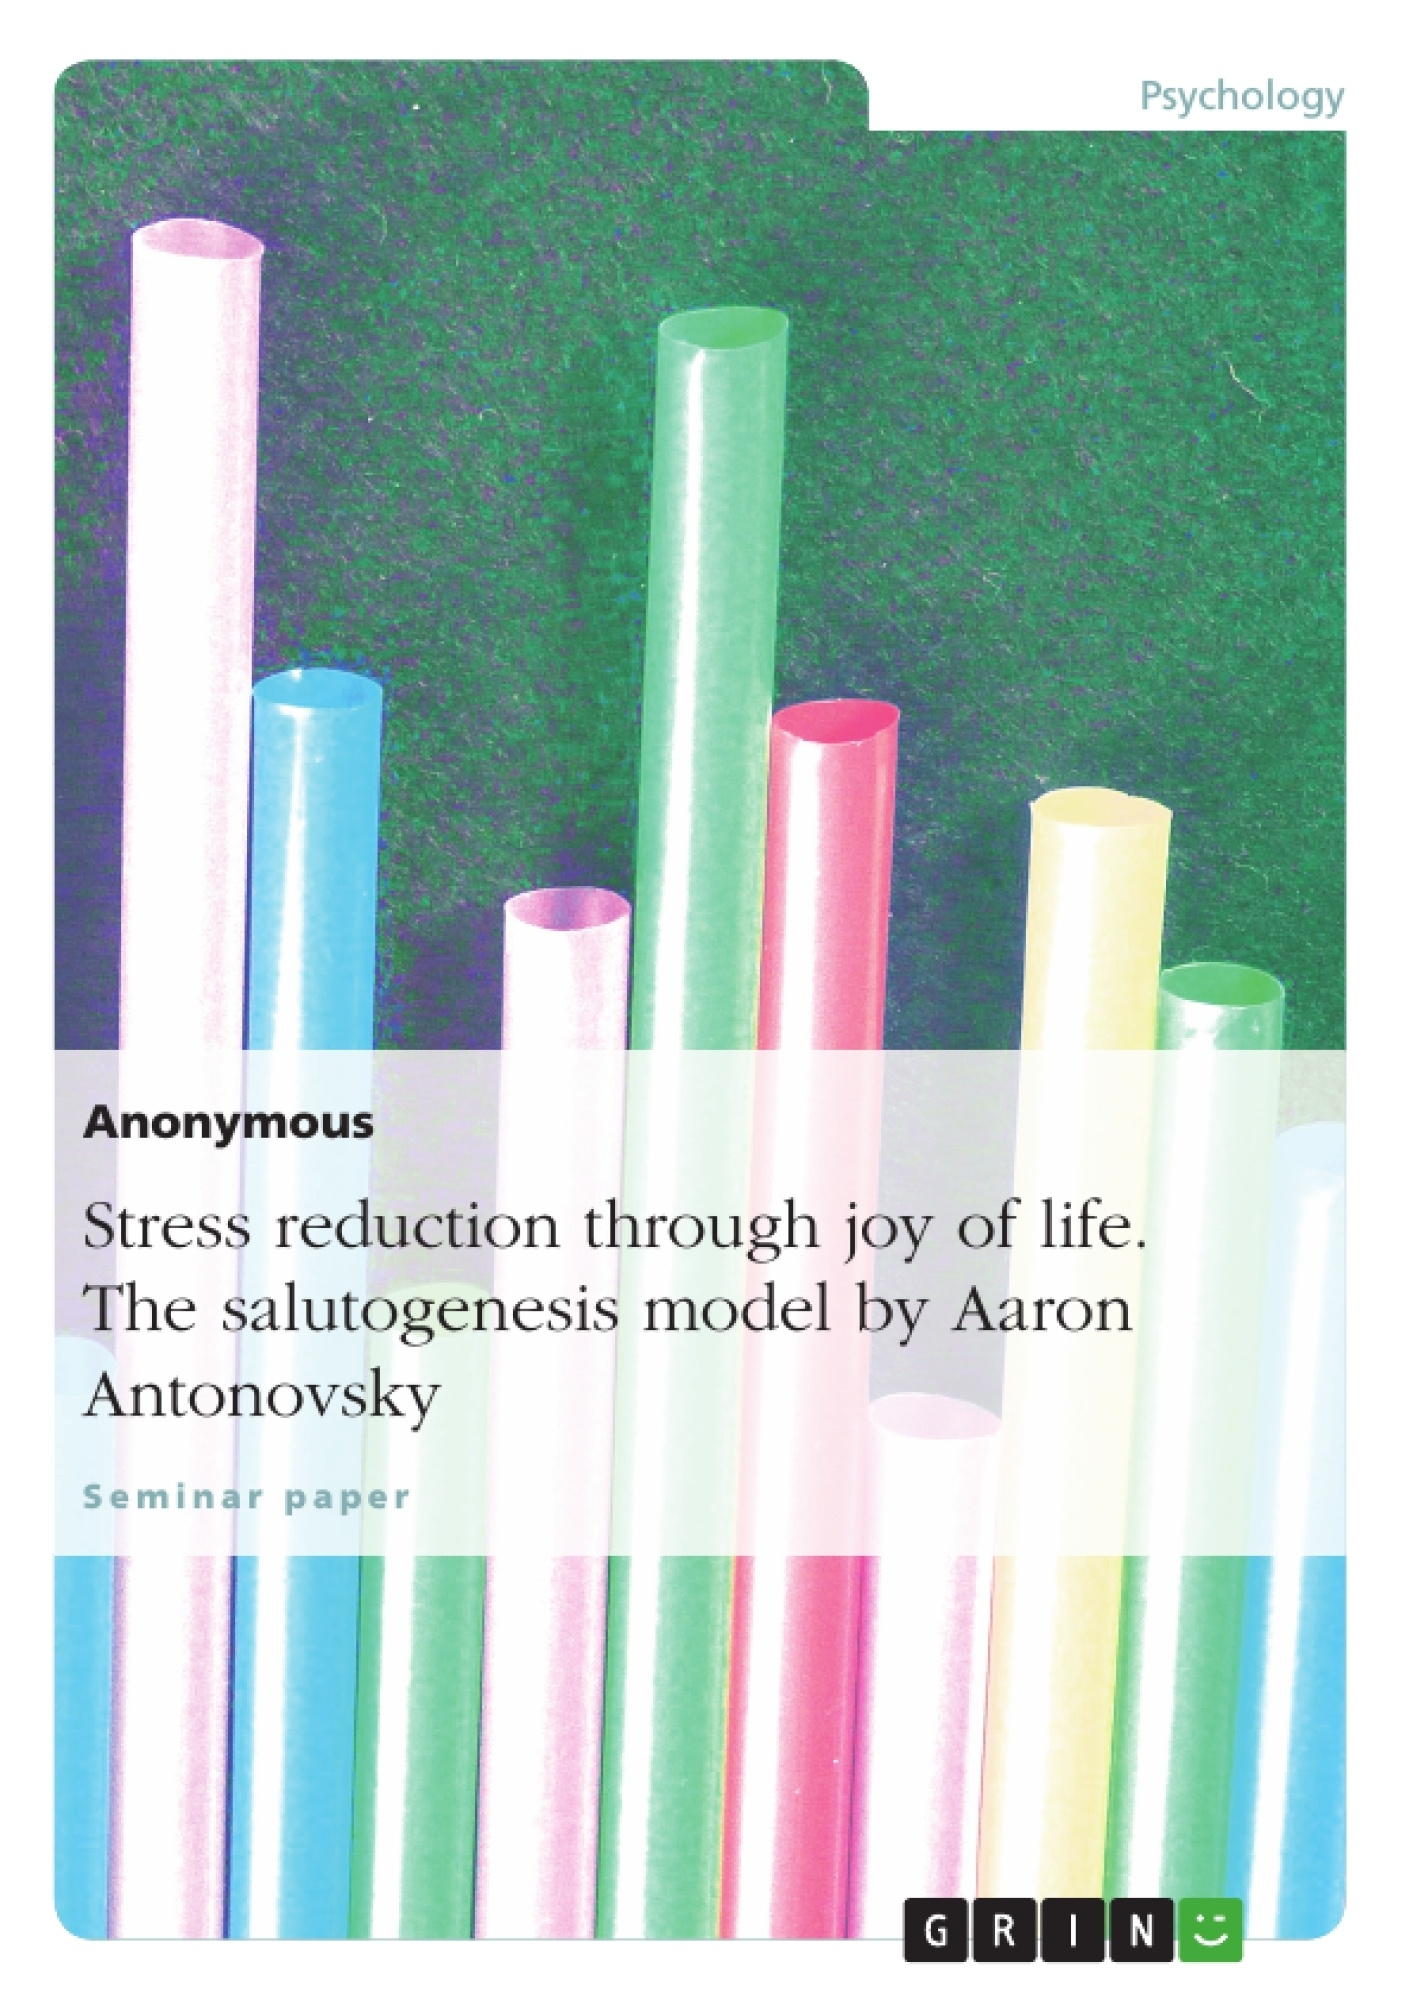 Title: Stress reduction through joy of life. The salutogenesis model by Aaron Antonovsky